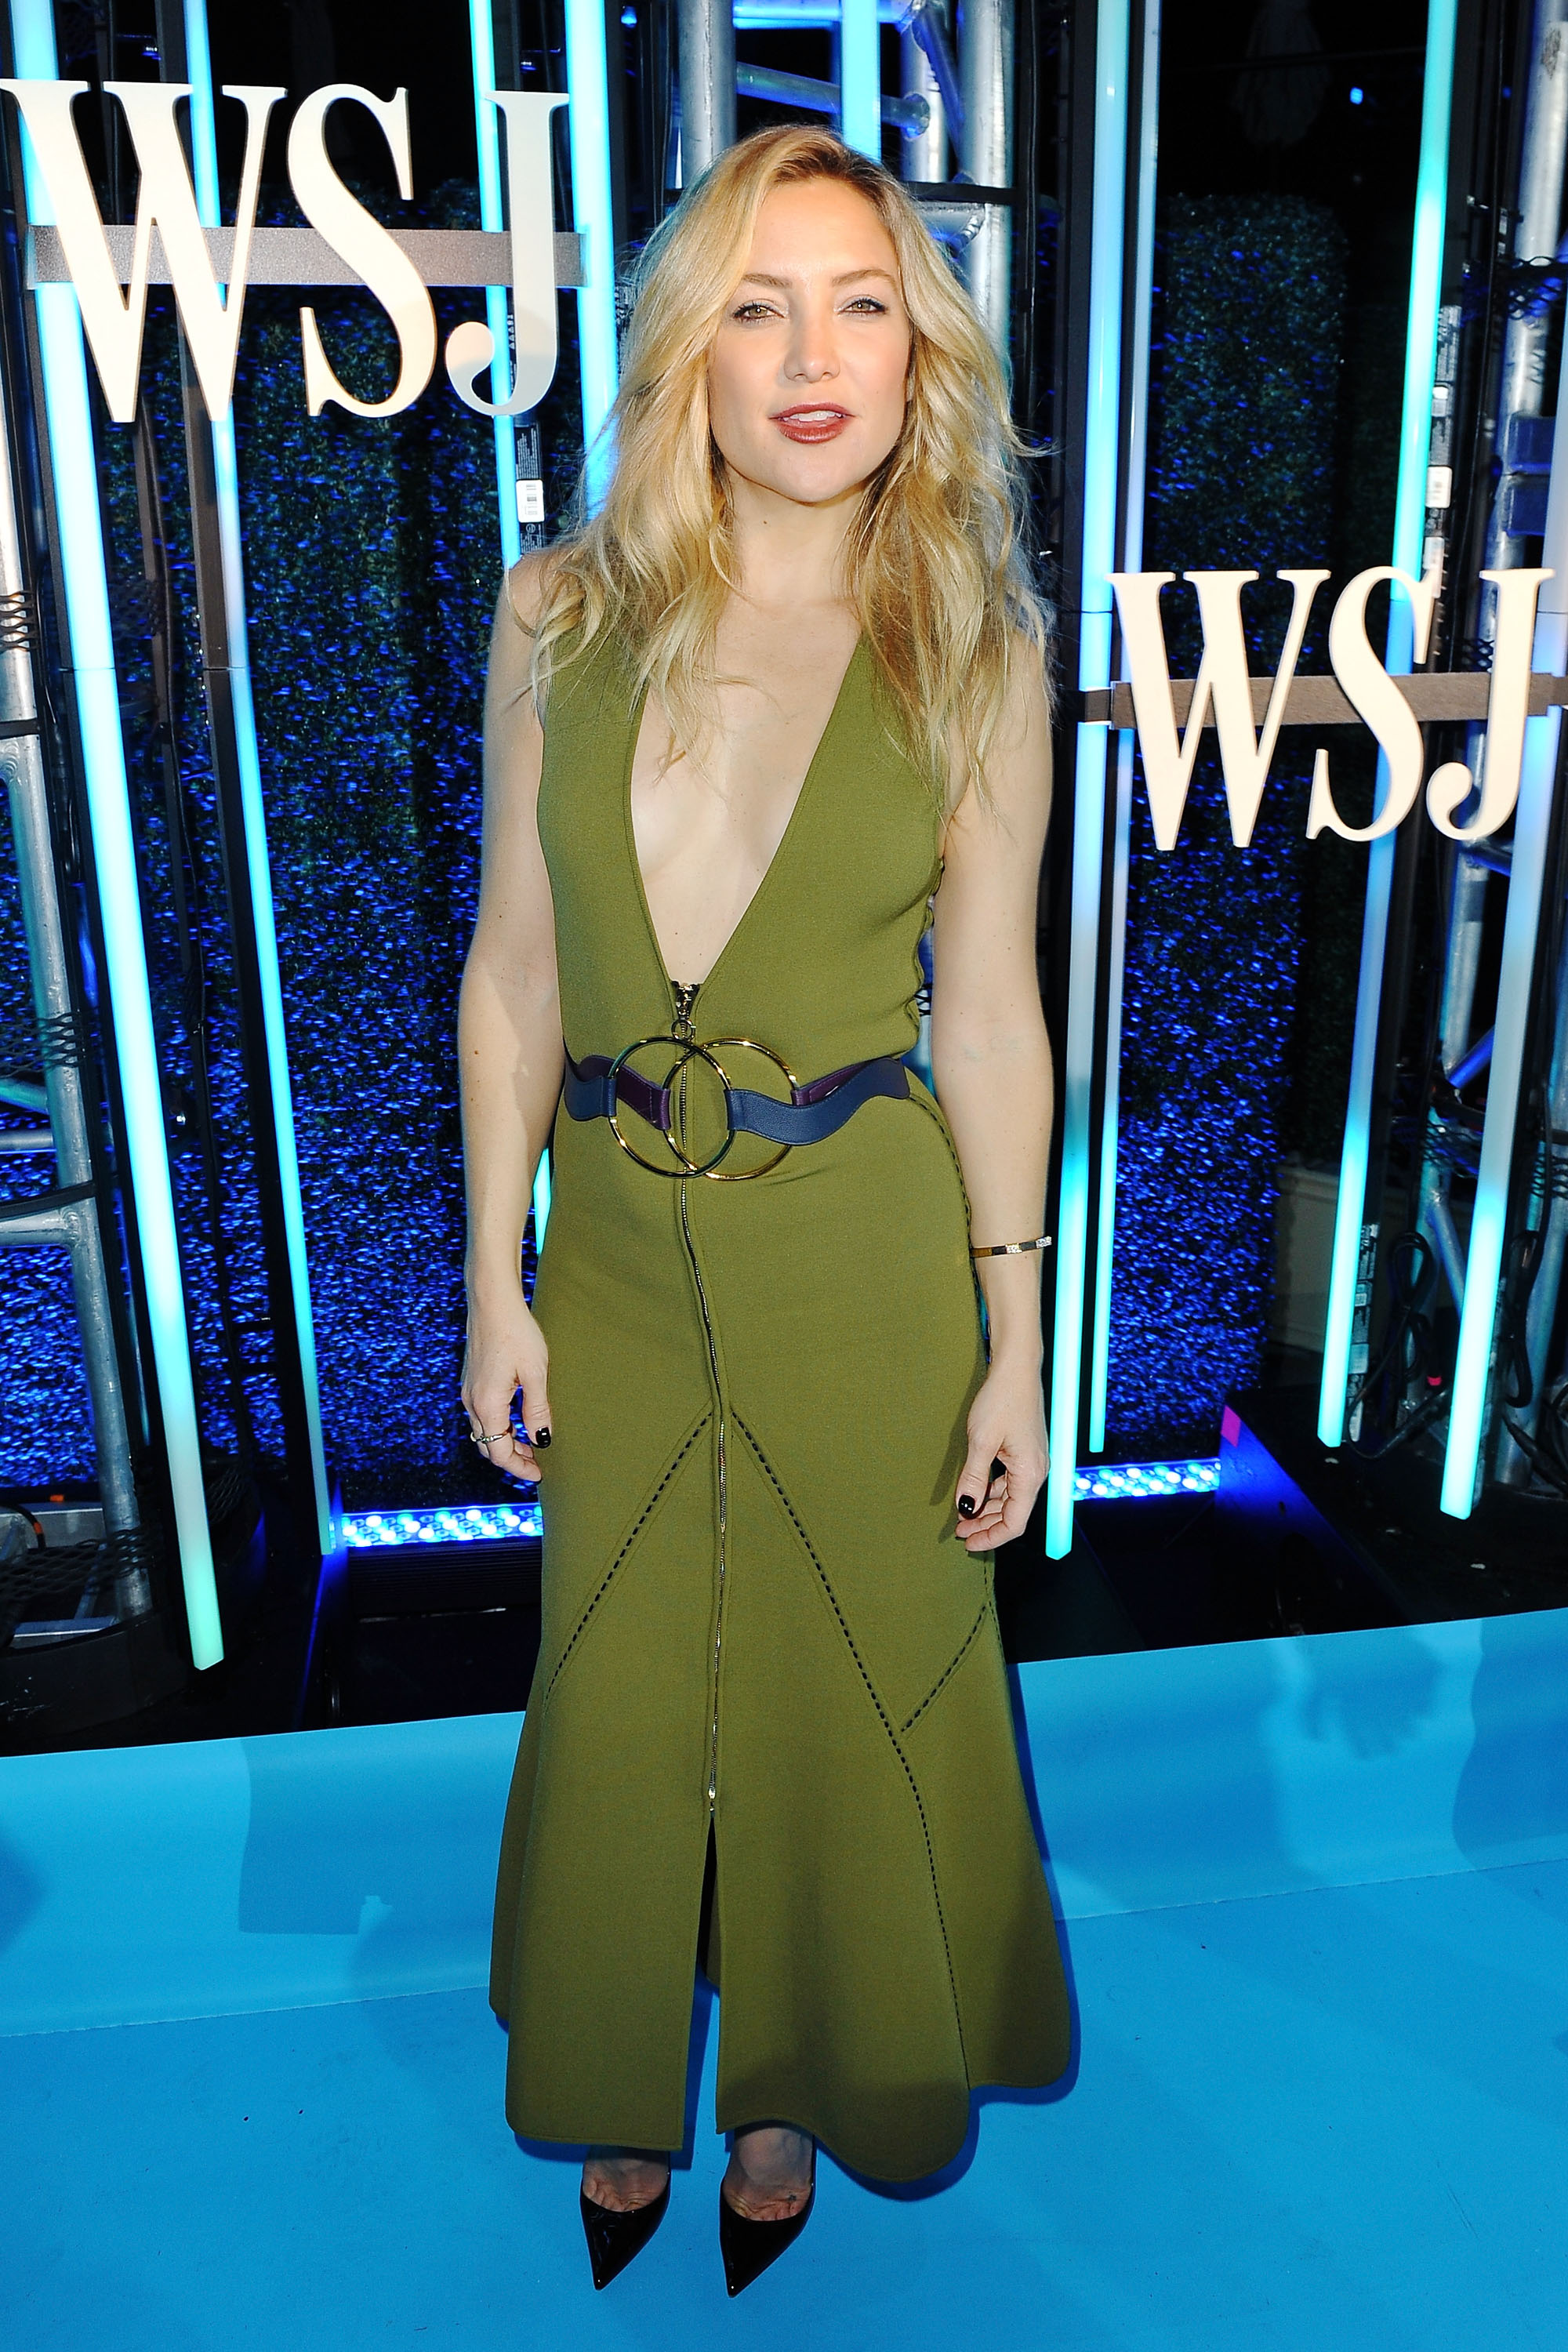 Kate Hudson Rocks A Daring Dress With A Plunging Neckline